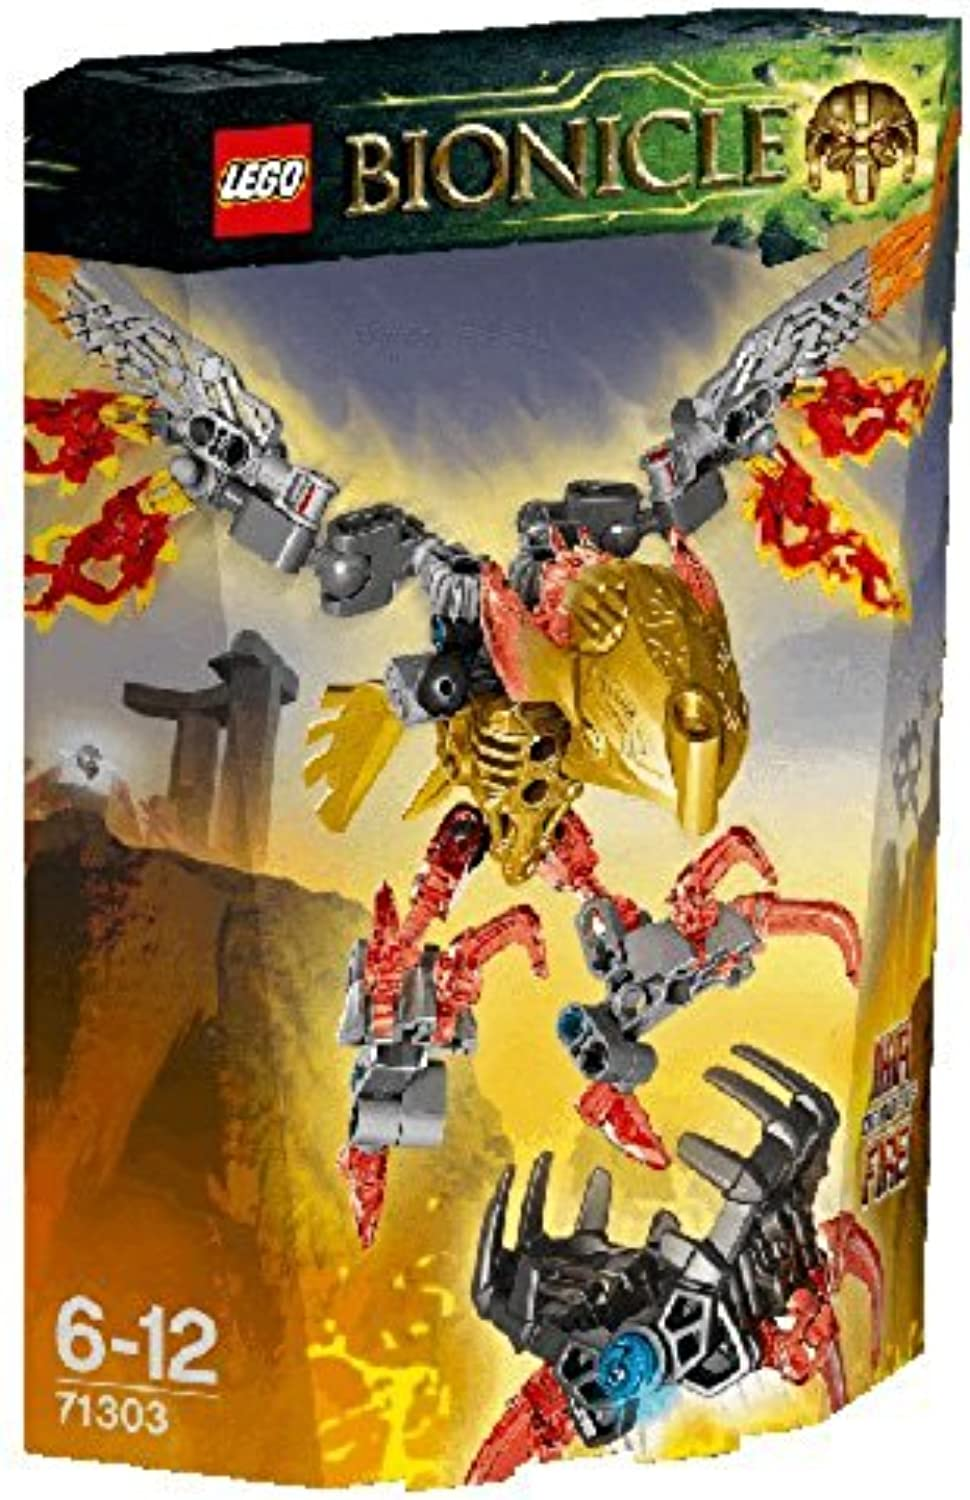 LEGO Bionicle 71303  Ikir Creature of Fire Mixed